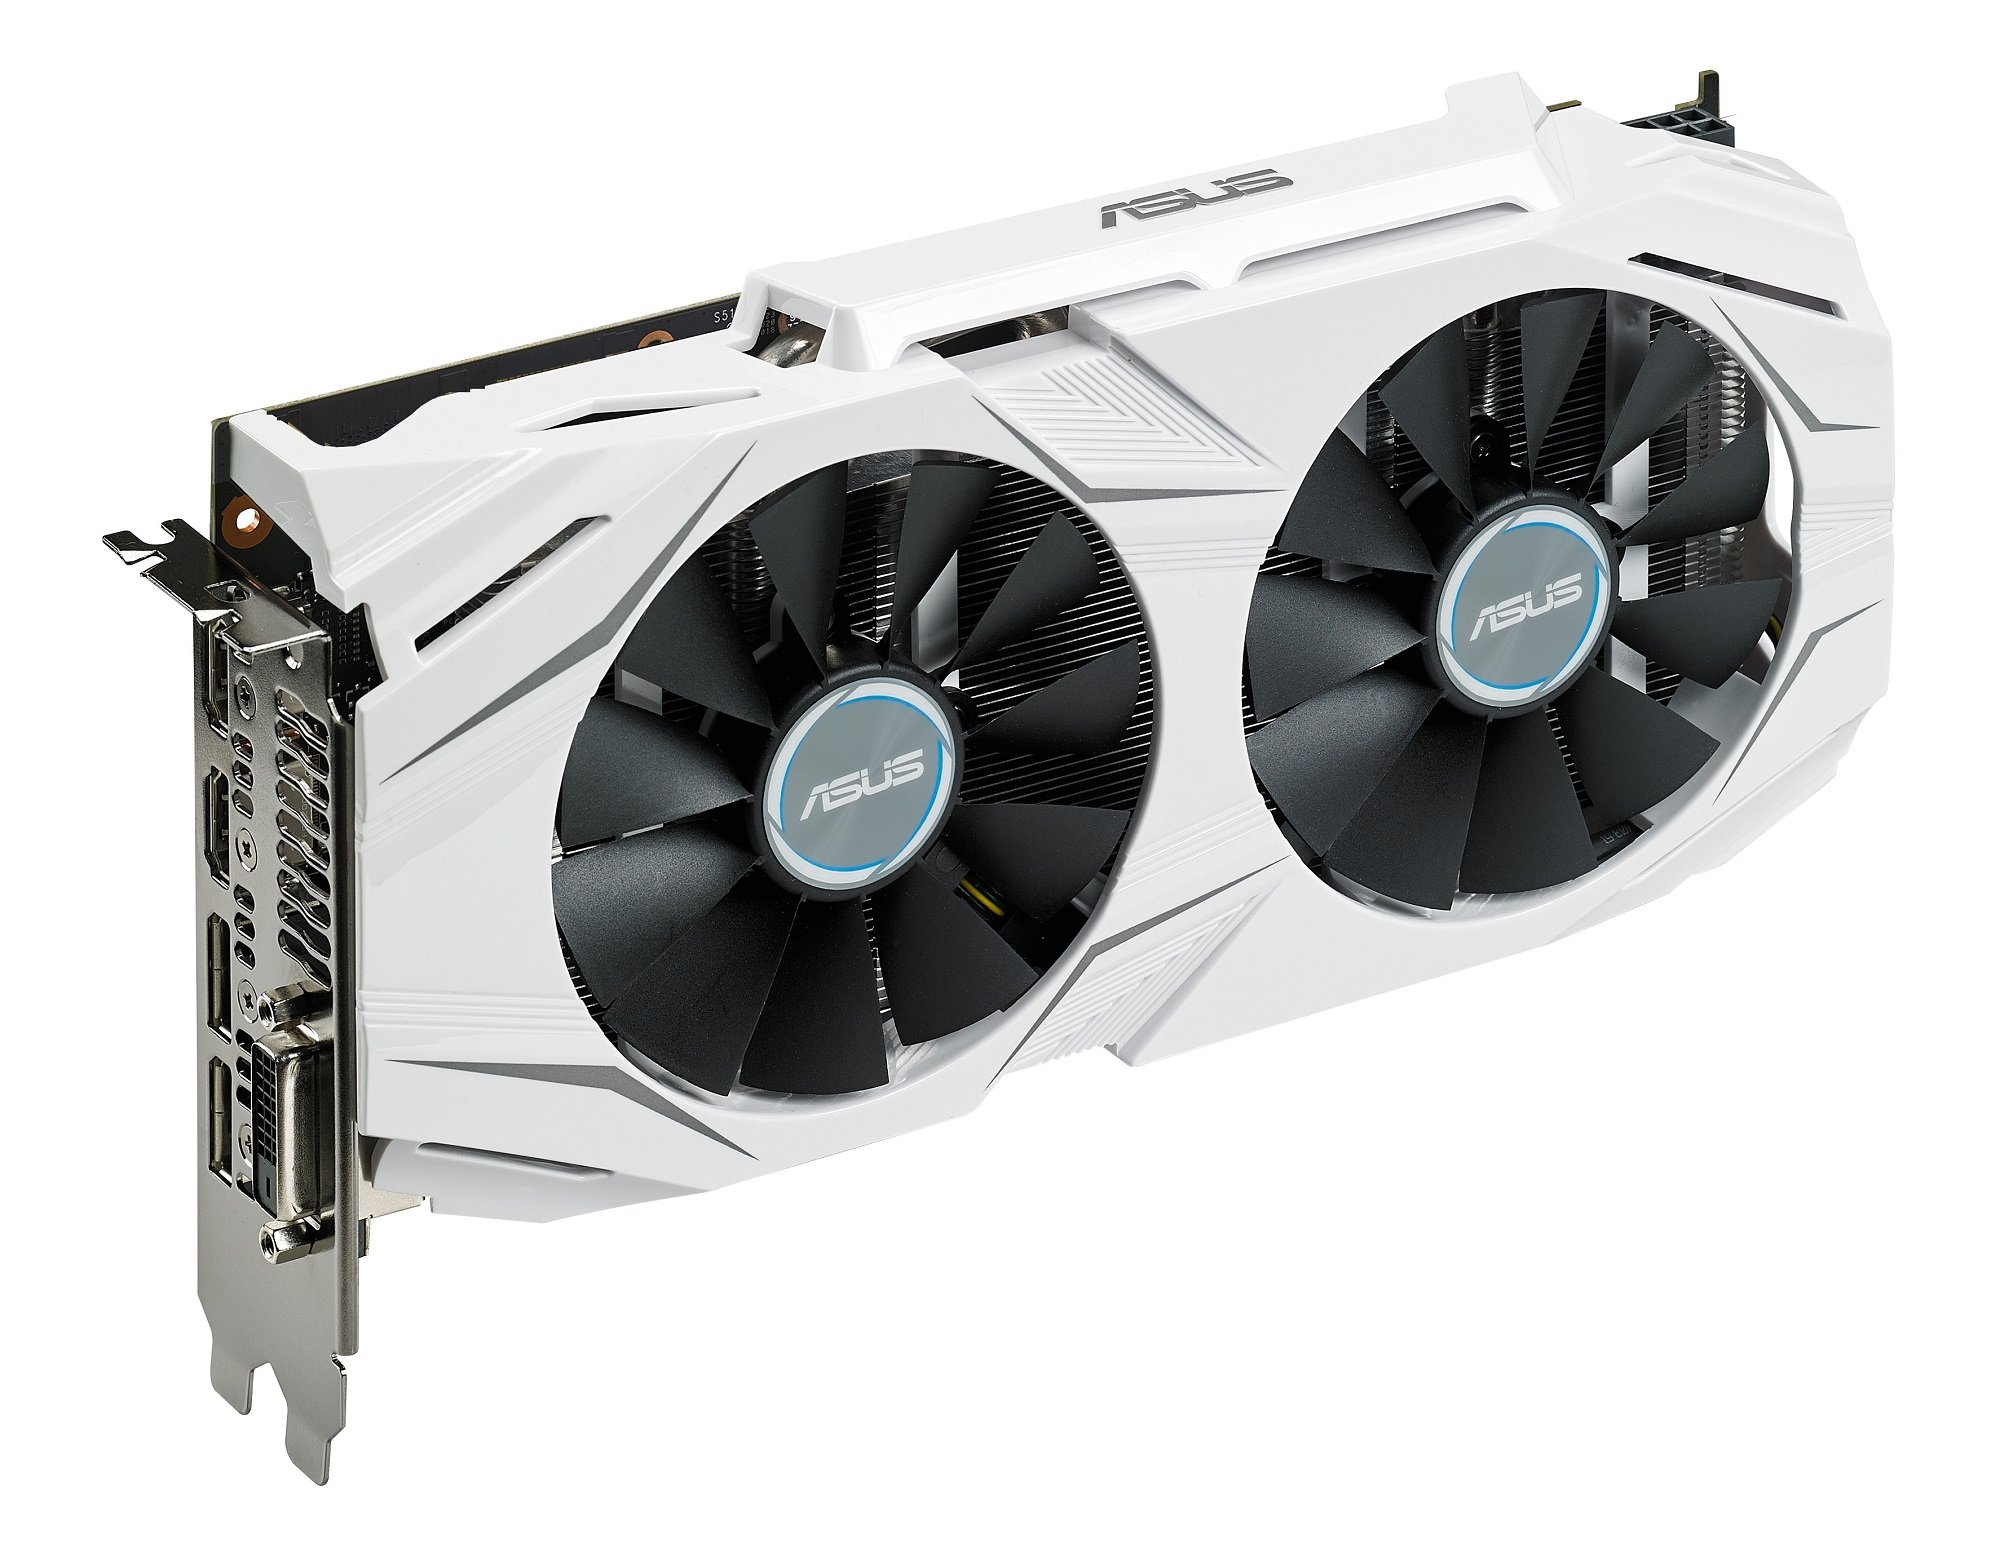 ASUS GeForce GTX 1060 6GB Dual-fan OC Edition VR Ready Dual HDMI DP 1.4 Gaming Graphics Card (DUAL-GTX1060-O6G) by Asus (Image #4)